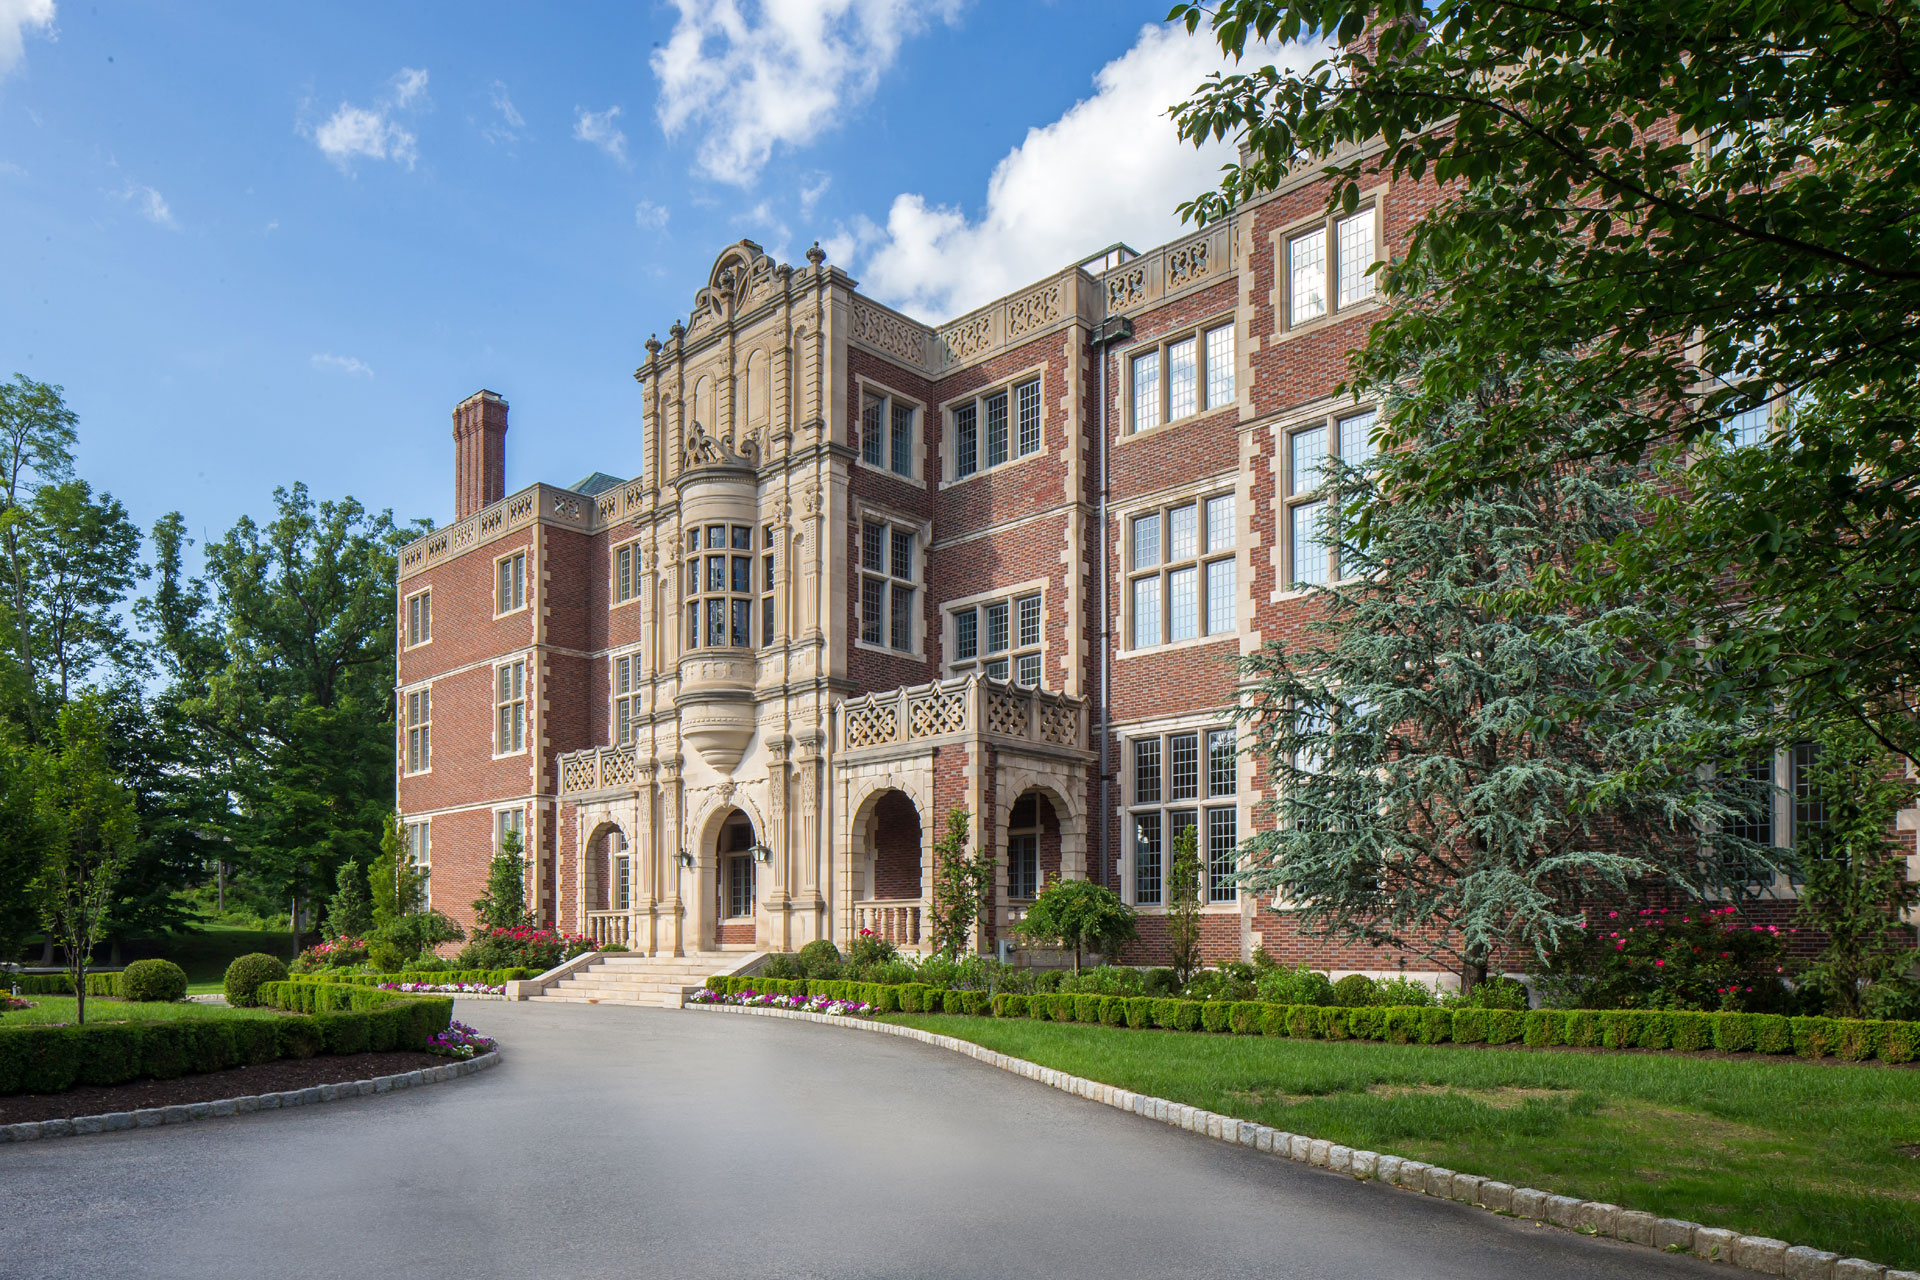 """""""The American Versailles,"""" Darlington was built in 1907 by renowned architects James Brite and Henry Bacon for railroad scion George Crocker. Today, the magnificent 58-room Jacobean-inspired mansion is listed on the National Register of Historic Places."""